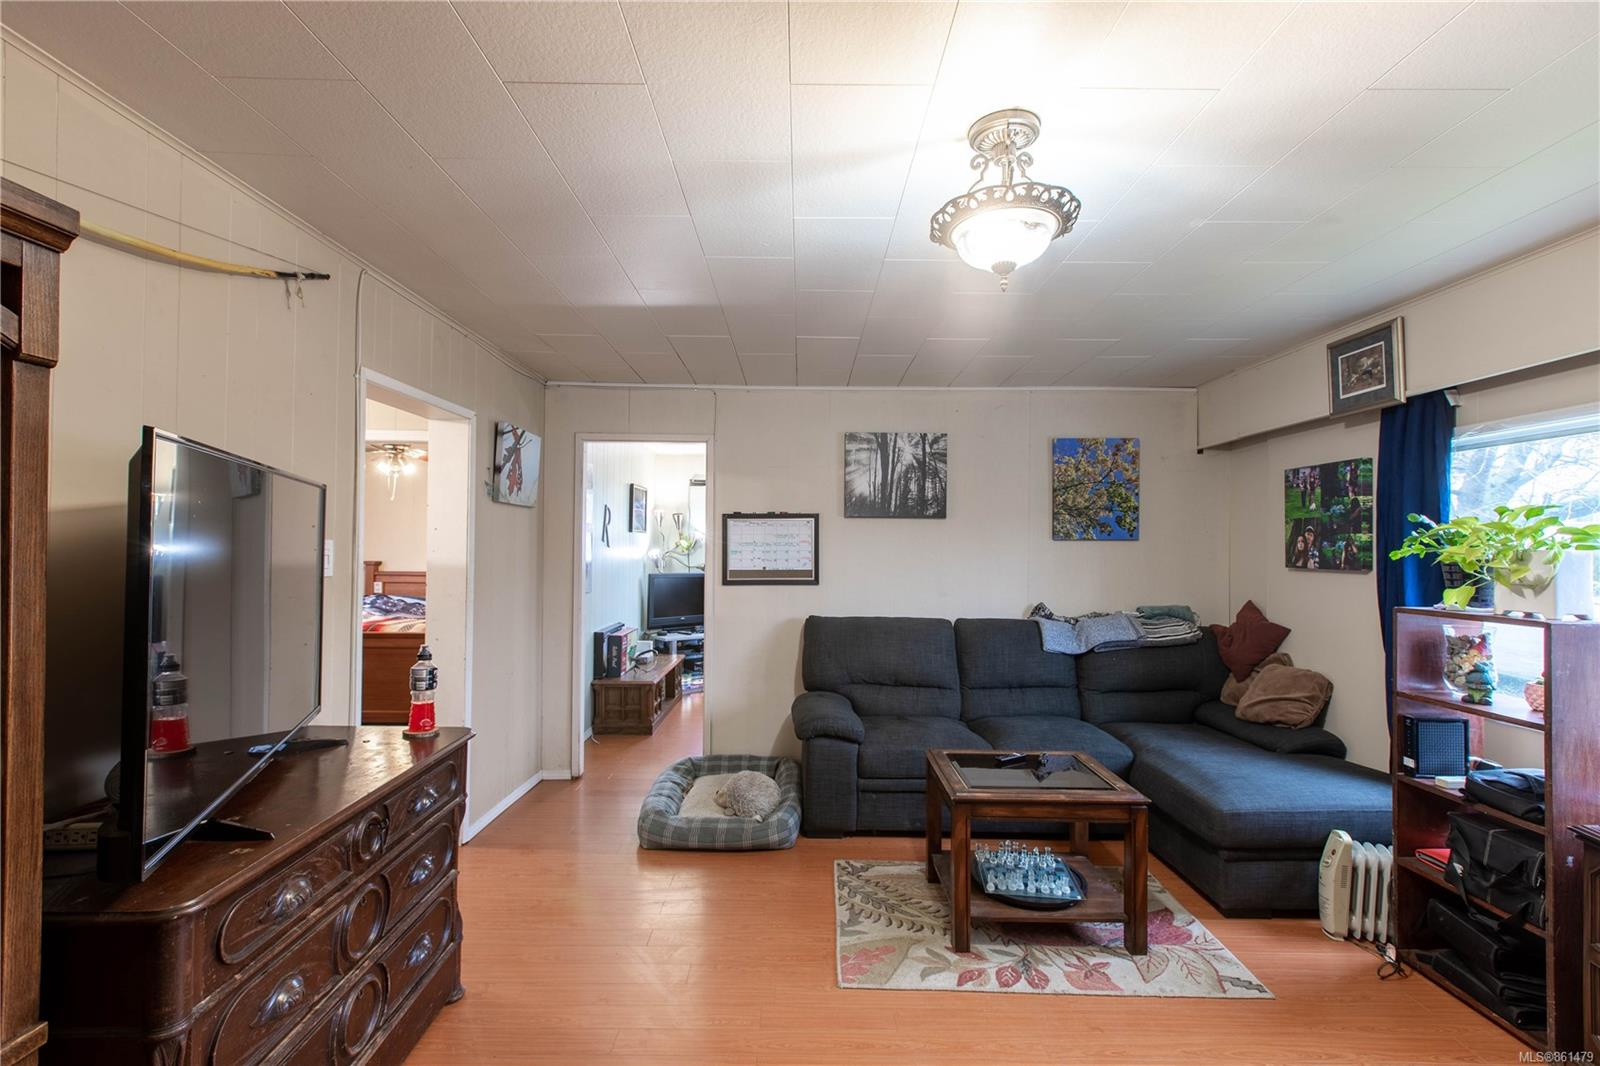 Photo 16 at 430 Festubert Street, Cowichan